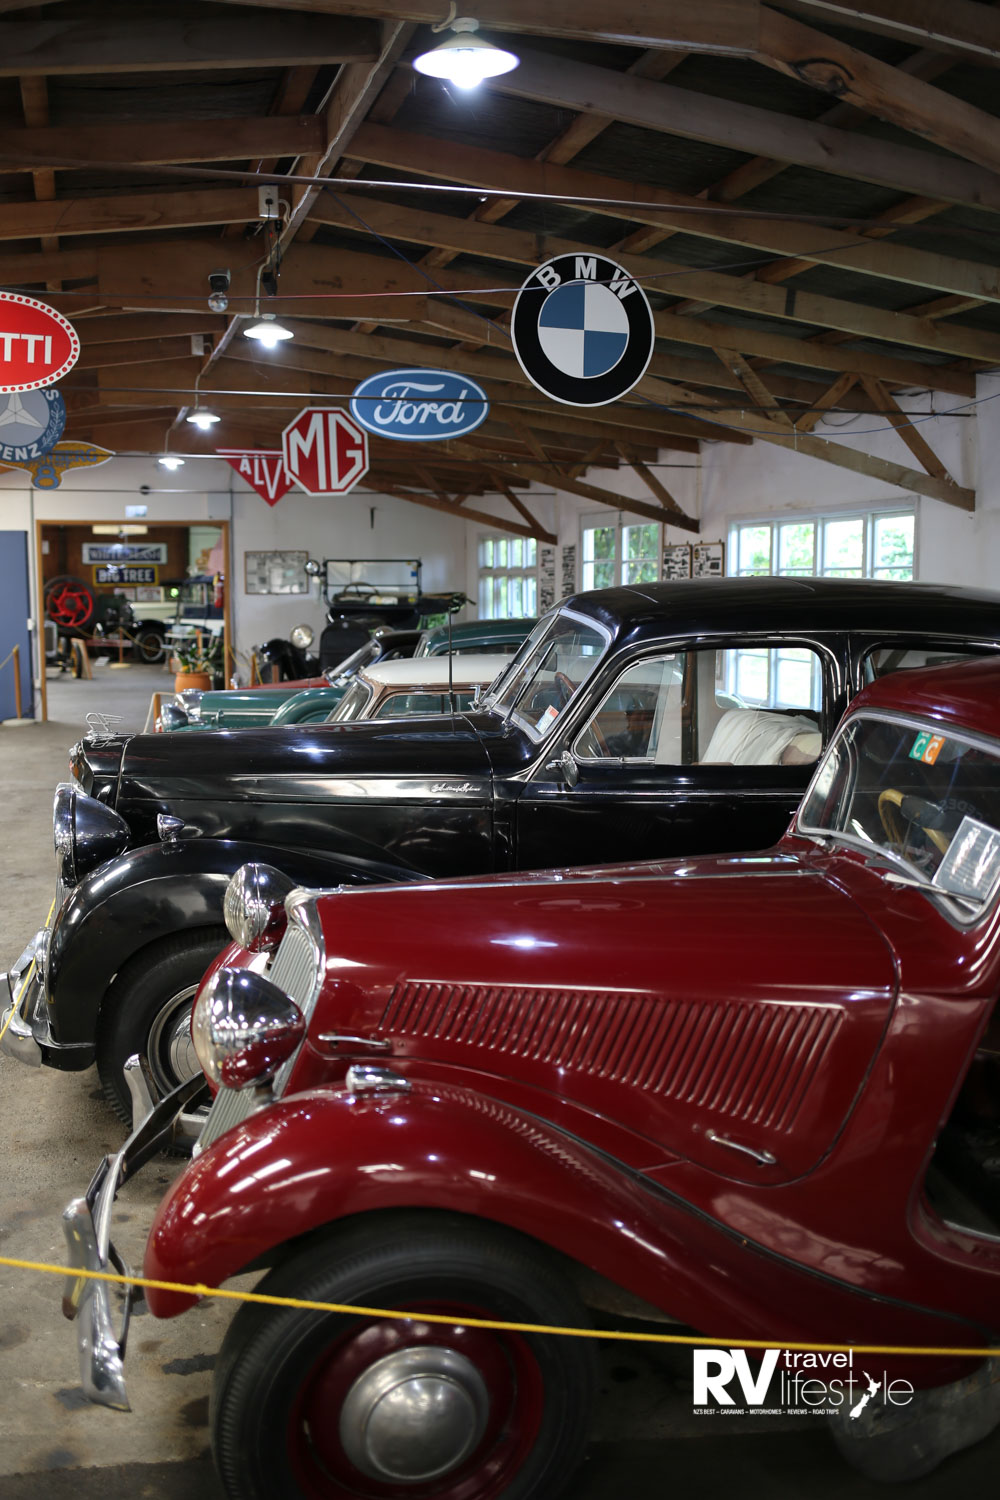 A range of makes and models from yesteryear